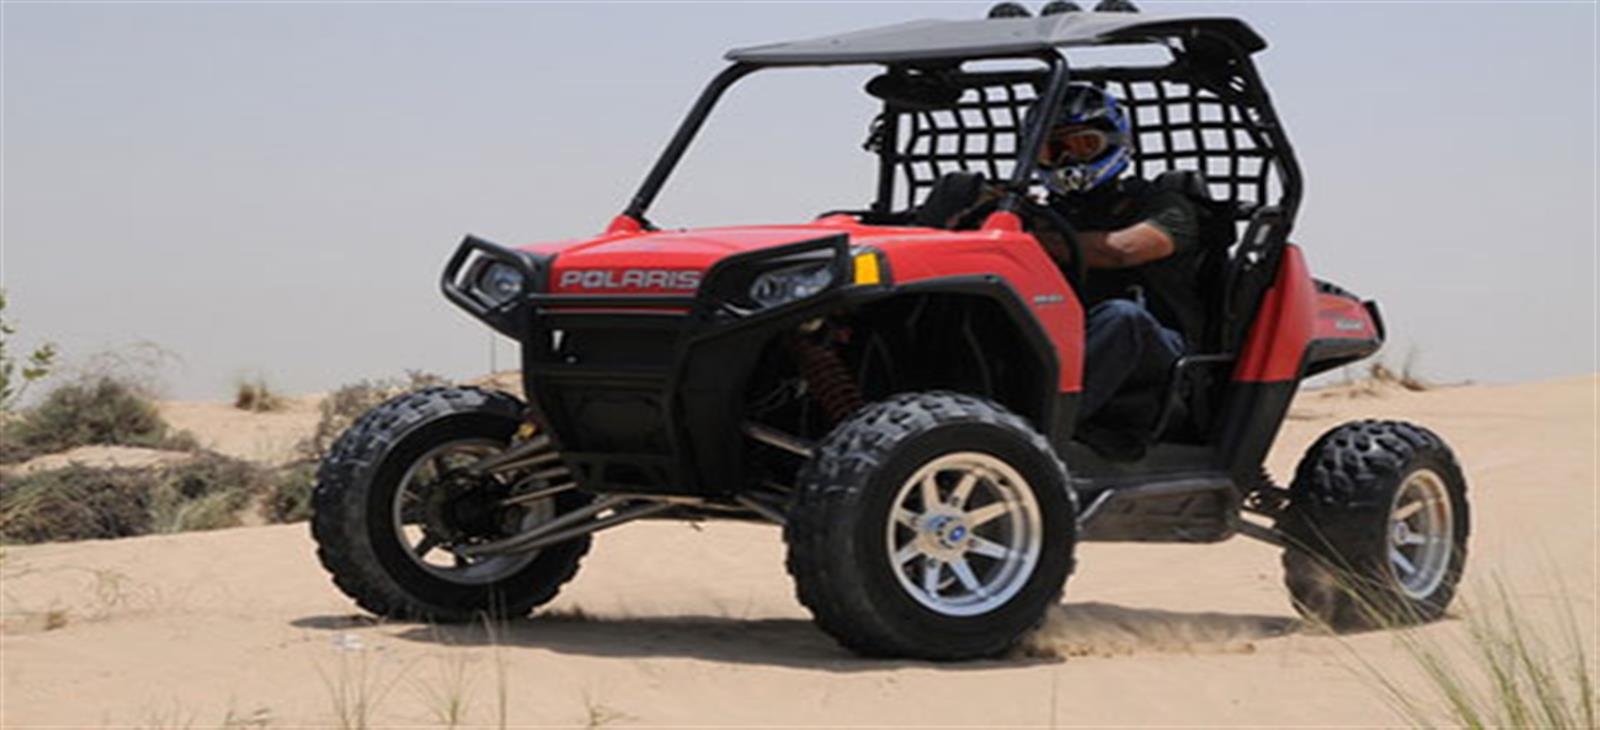 marsa alam sunset quad biking desert safari